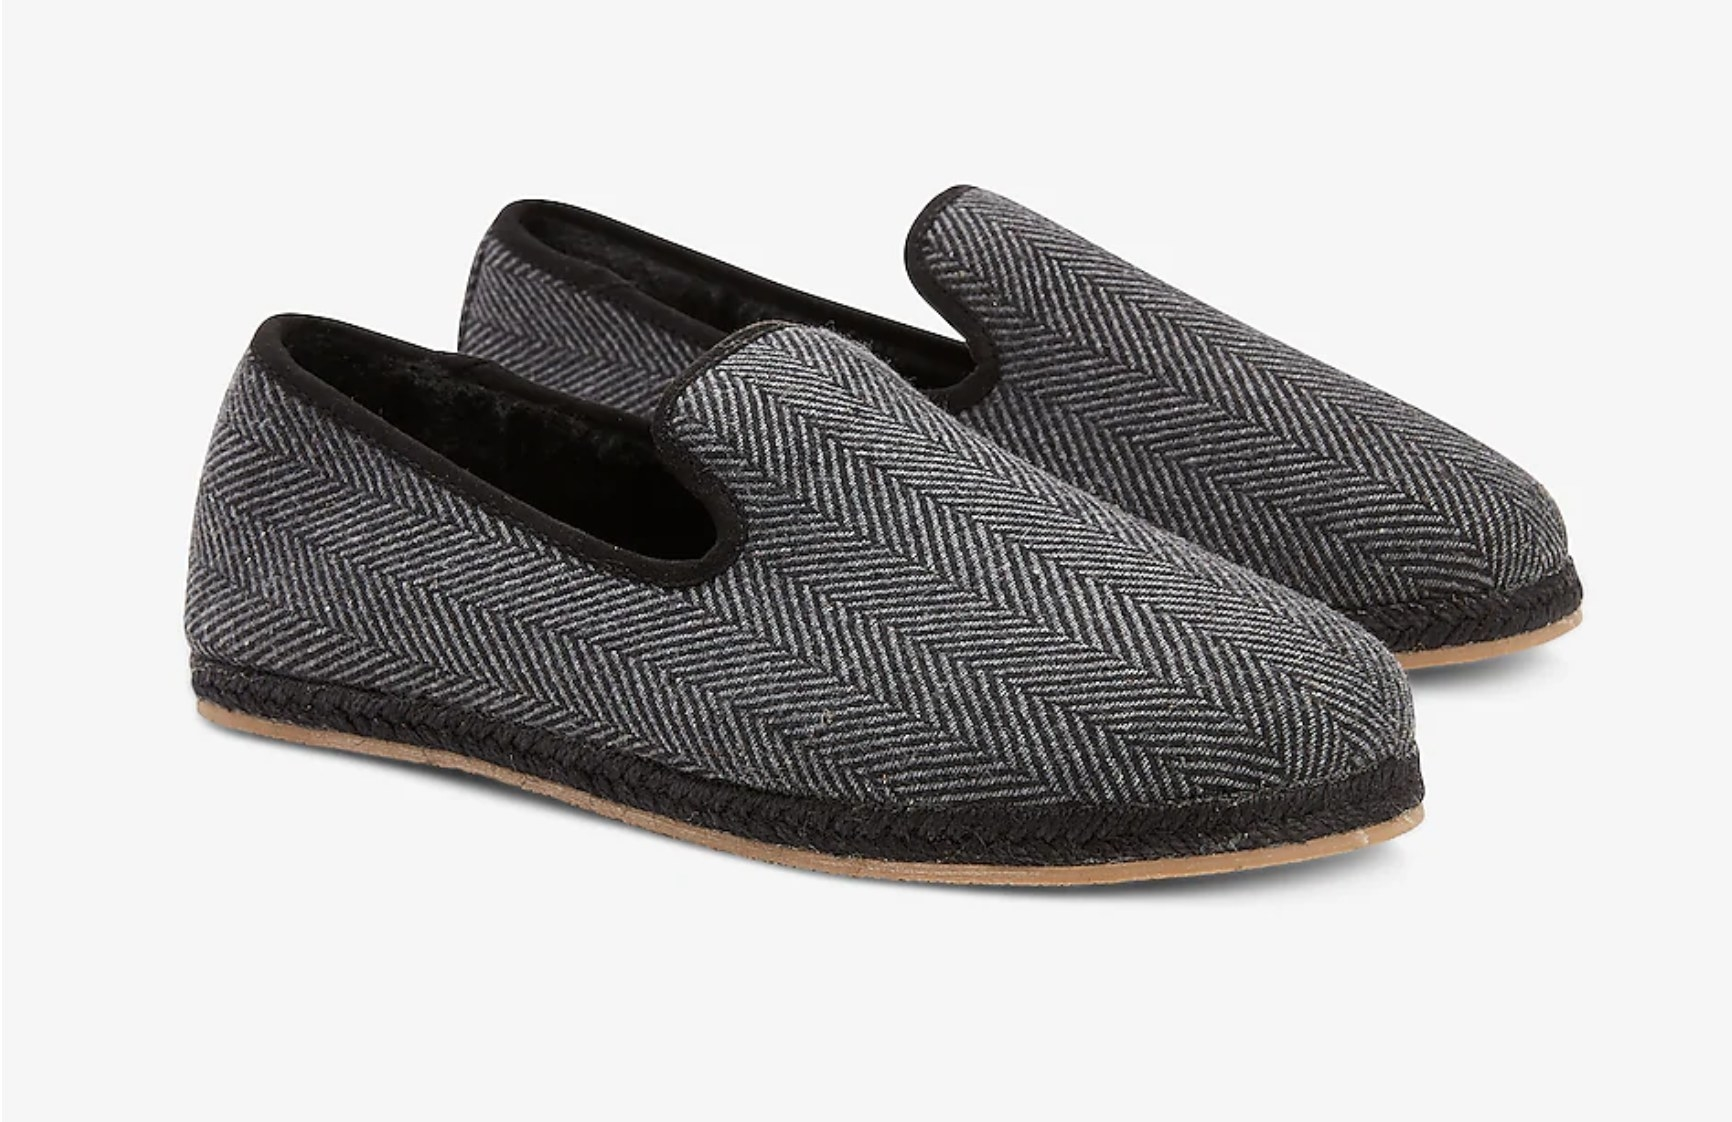 A pair of black and gray house slippers